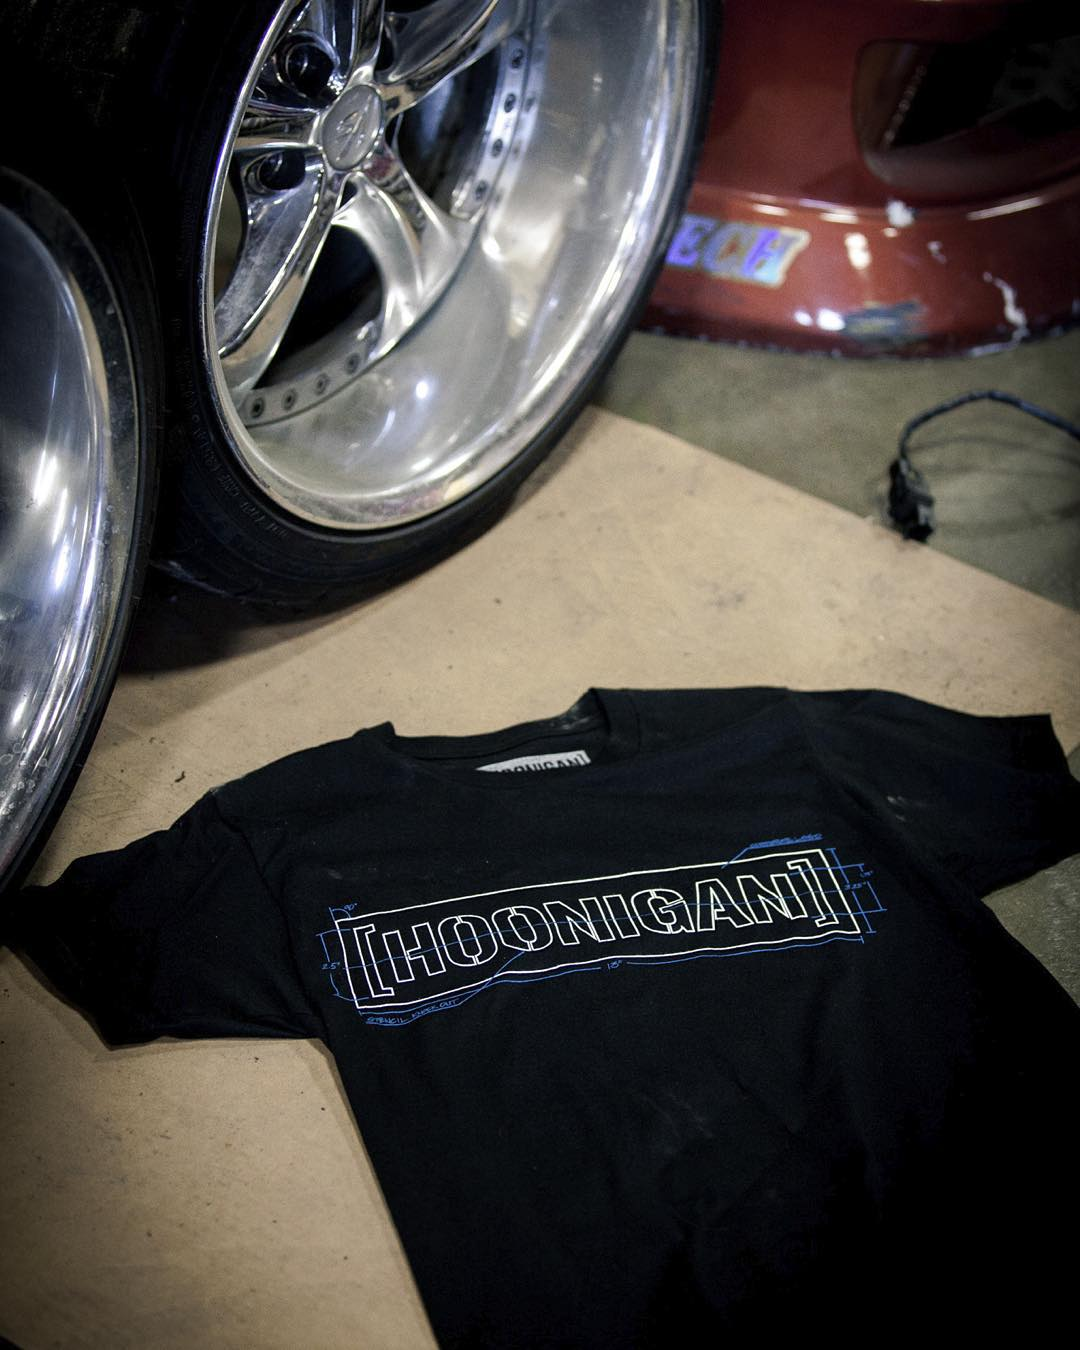 #HNGN shirts are made to get greasy. Add our Technical C-bar Tee to your dirty laundry basket by visiting #hooniganDOTcom. #HNGN